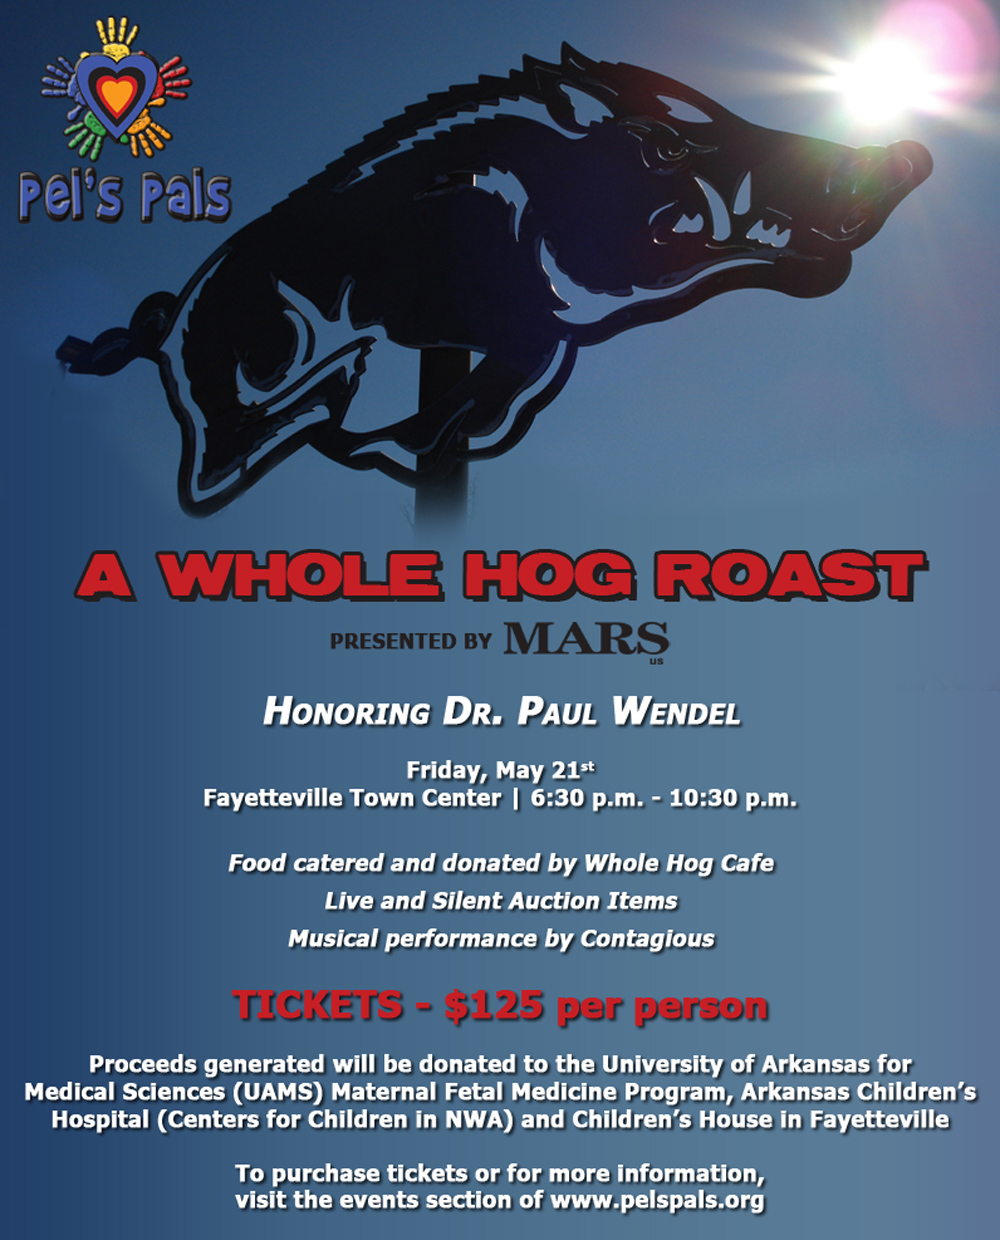 Pel's Pals Hog Roast is 2 Weeks Away